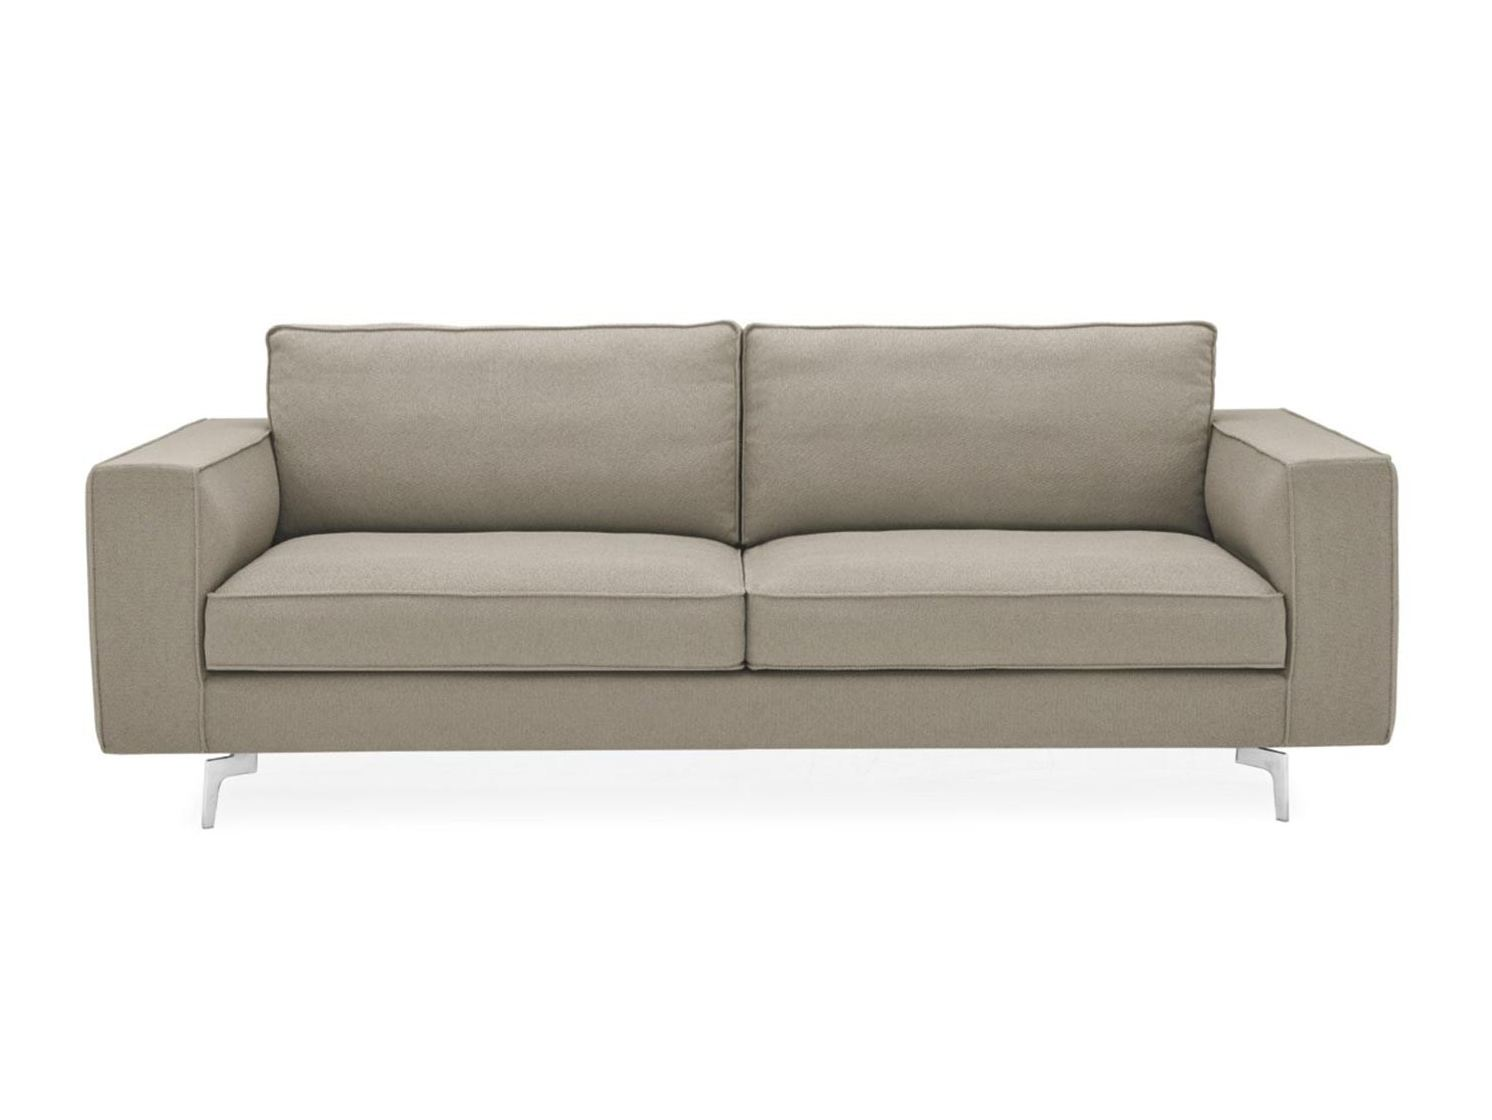 Sectional fabric sofa square by calligaris design for Poltrona lazy calligaris